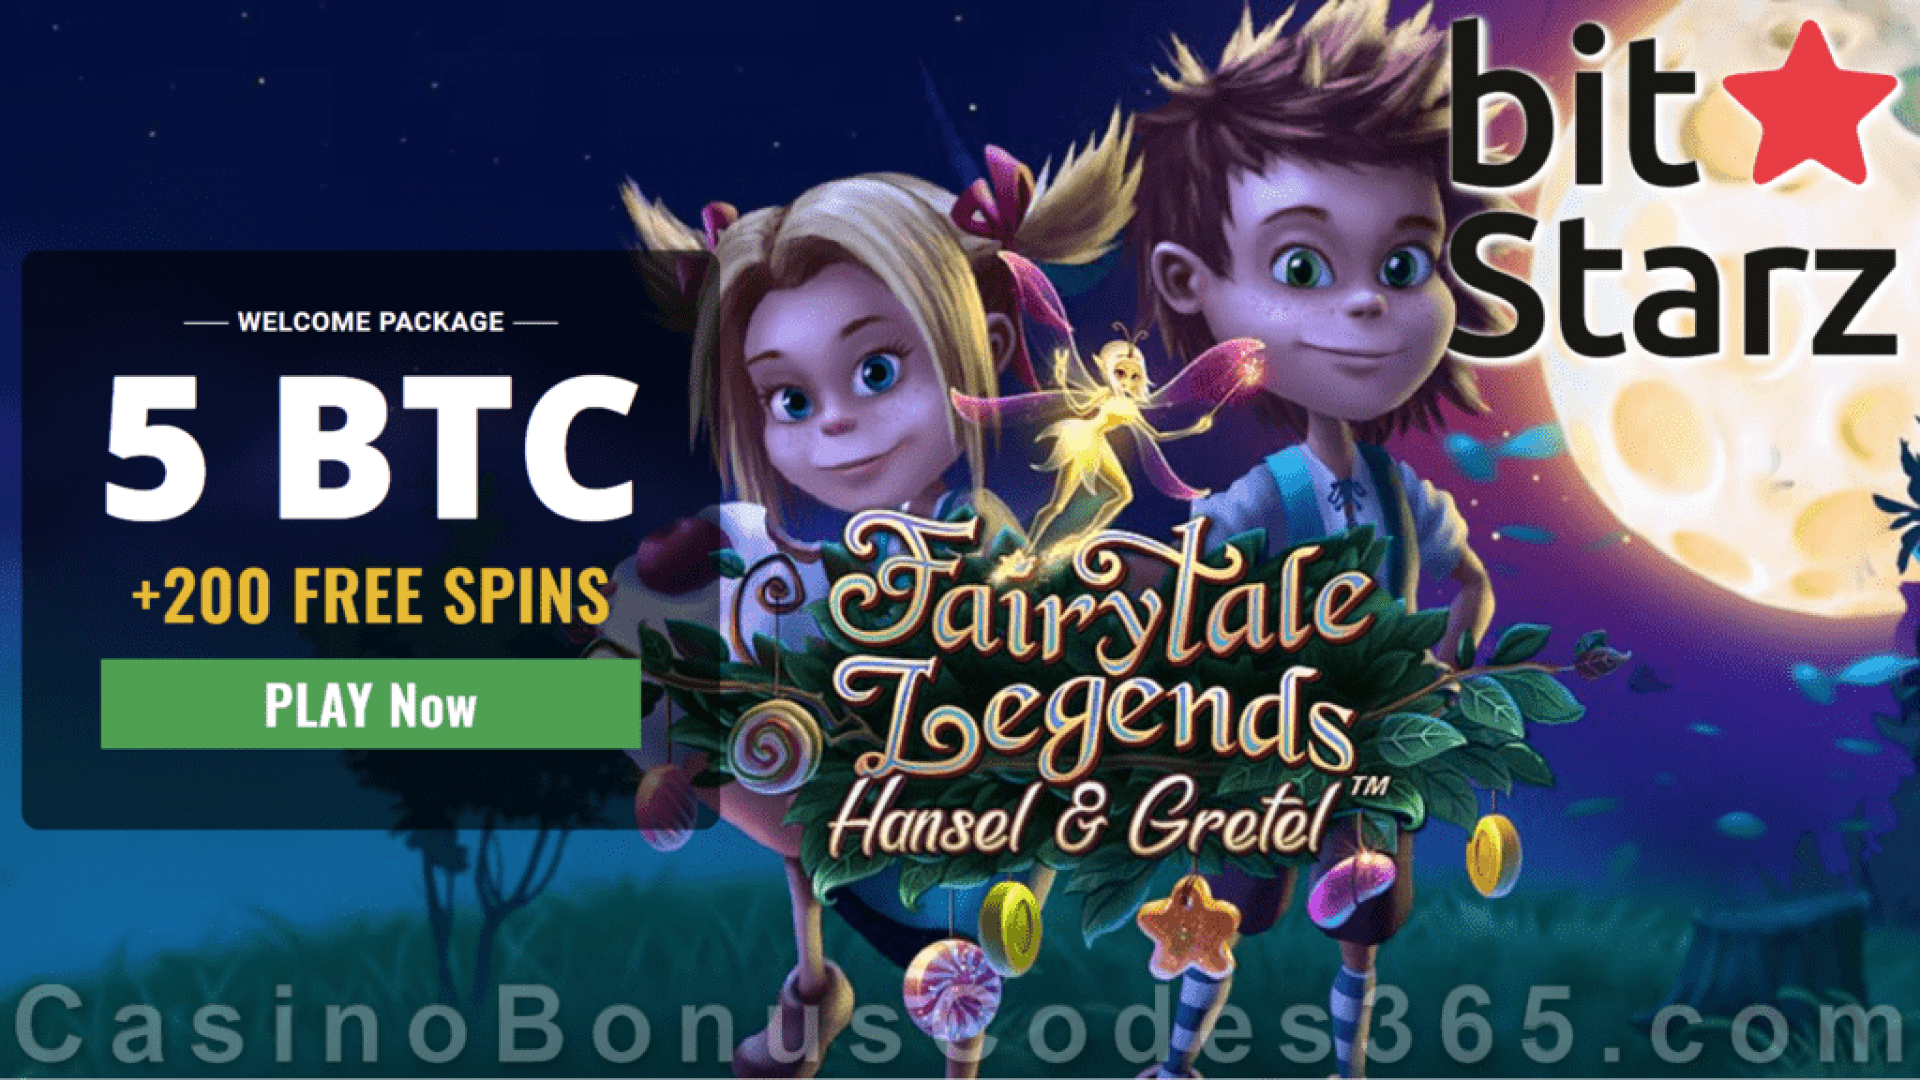 Bitstarz Casino 5 BTC plus 200 FREE Spins Welcome Bonus Pack